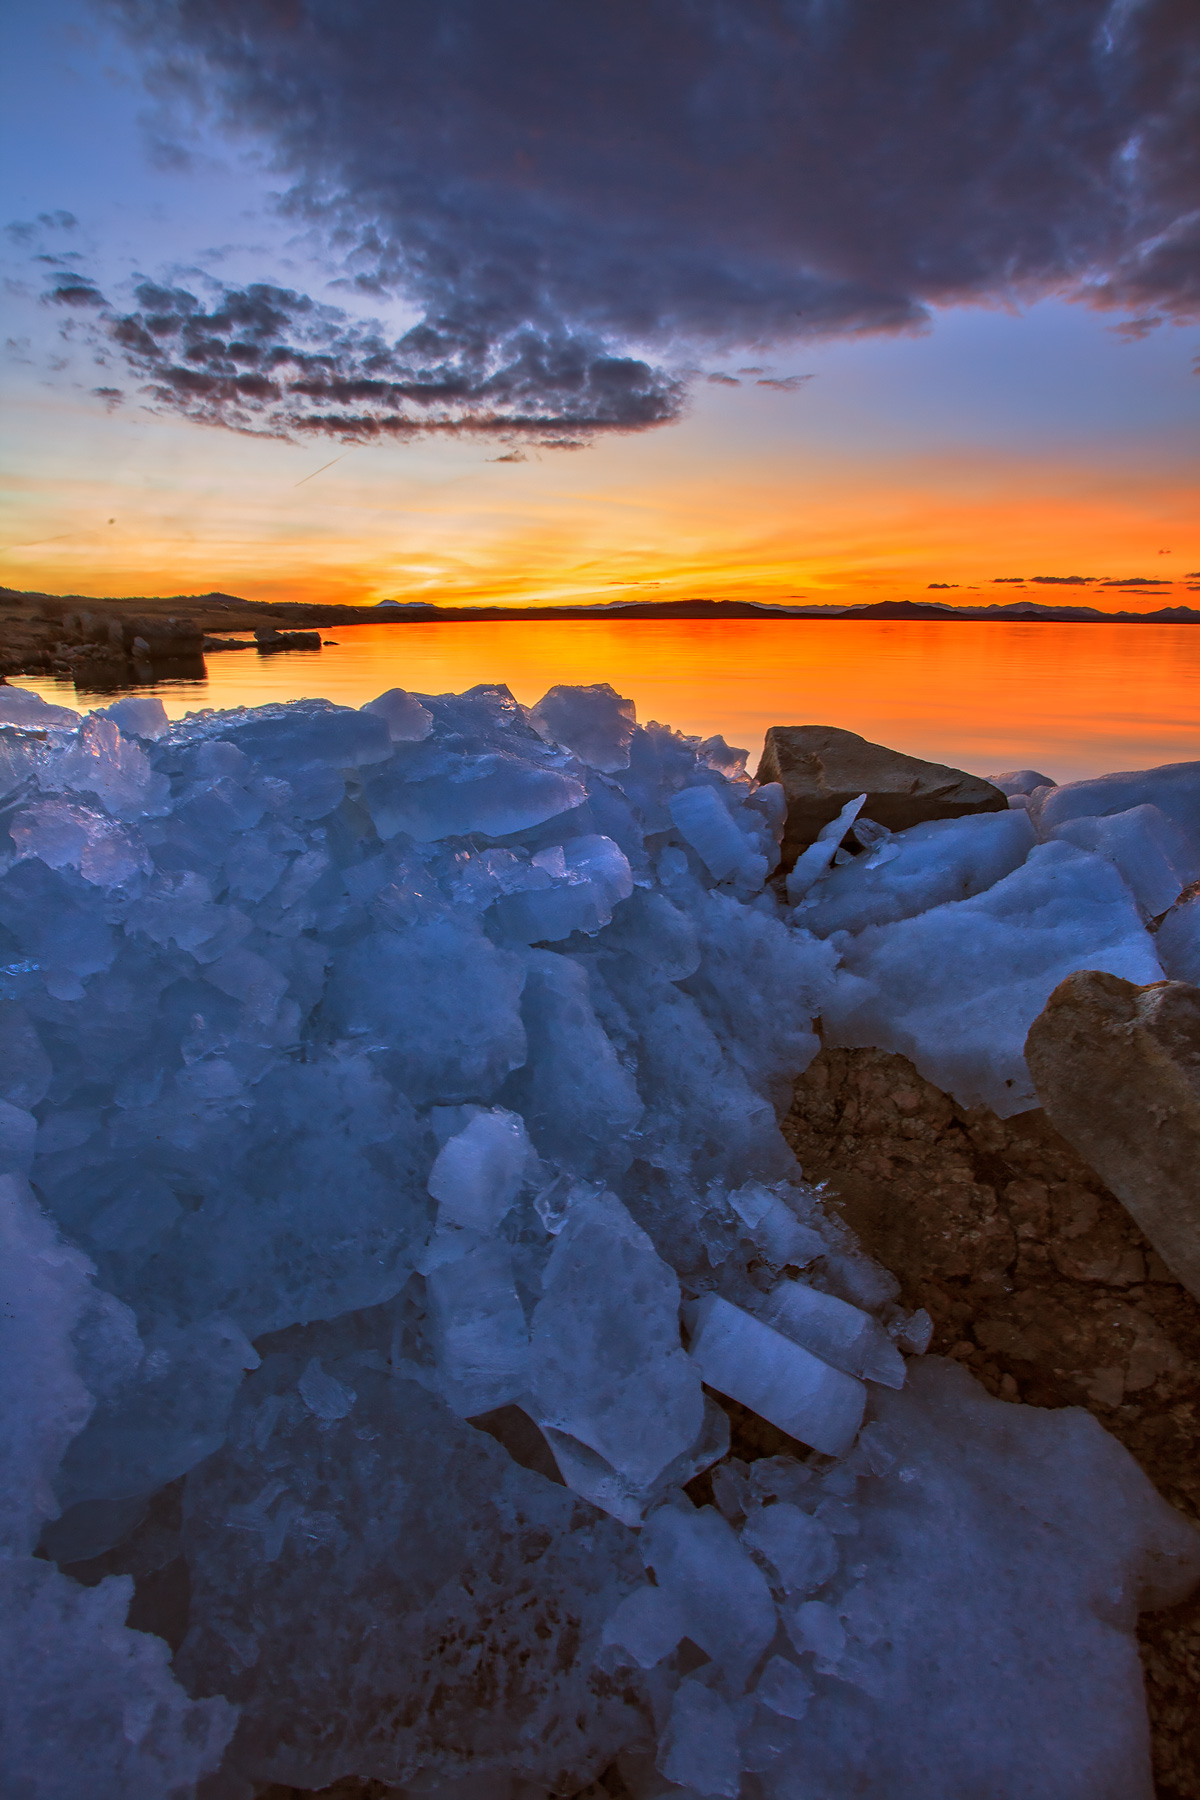 Sunset from the icy shore of Eleven Mile Reservoir.